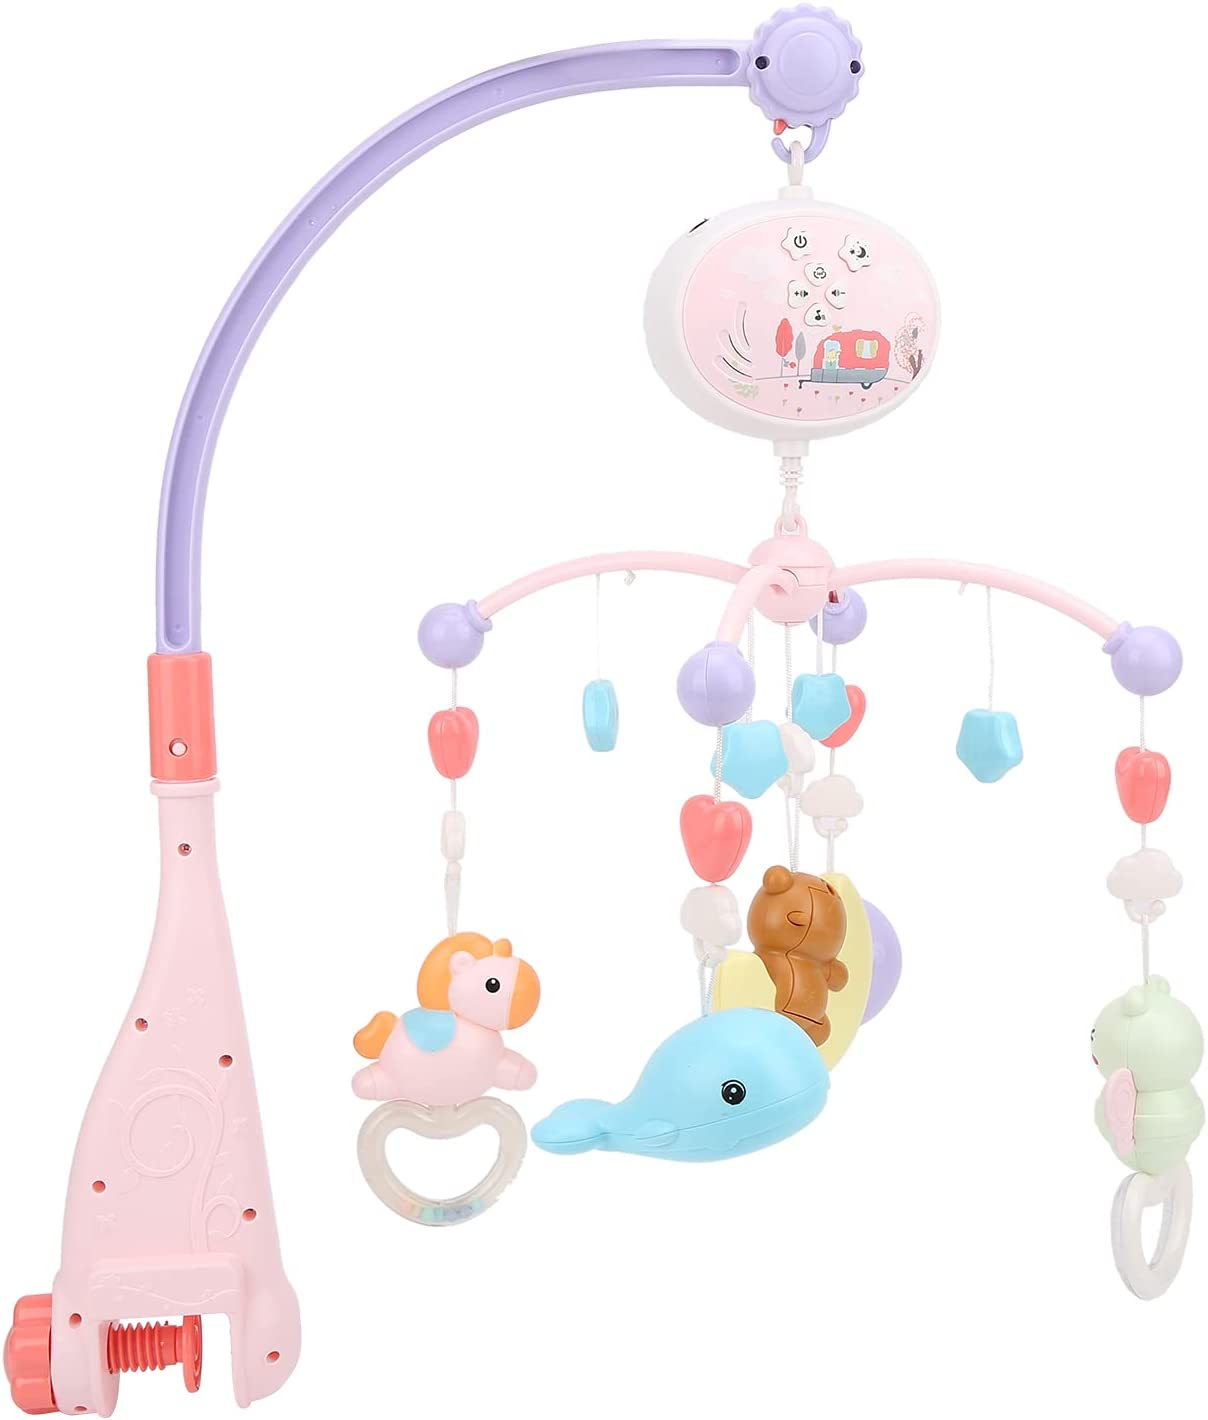 Zerodis 4 years warranty Baby Musical Crib Mobile Hanging with Rotating Sta Bell 2021 autumn and winter new